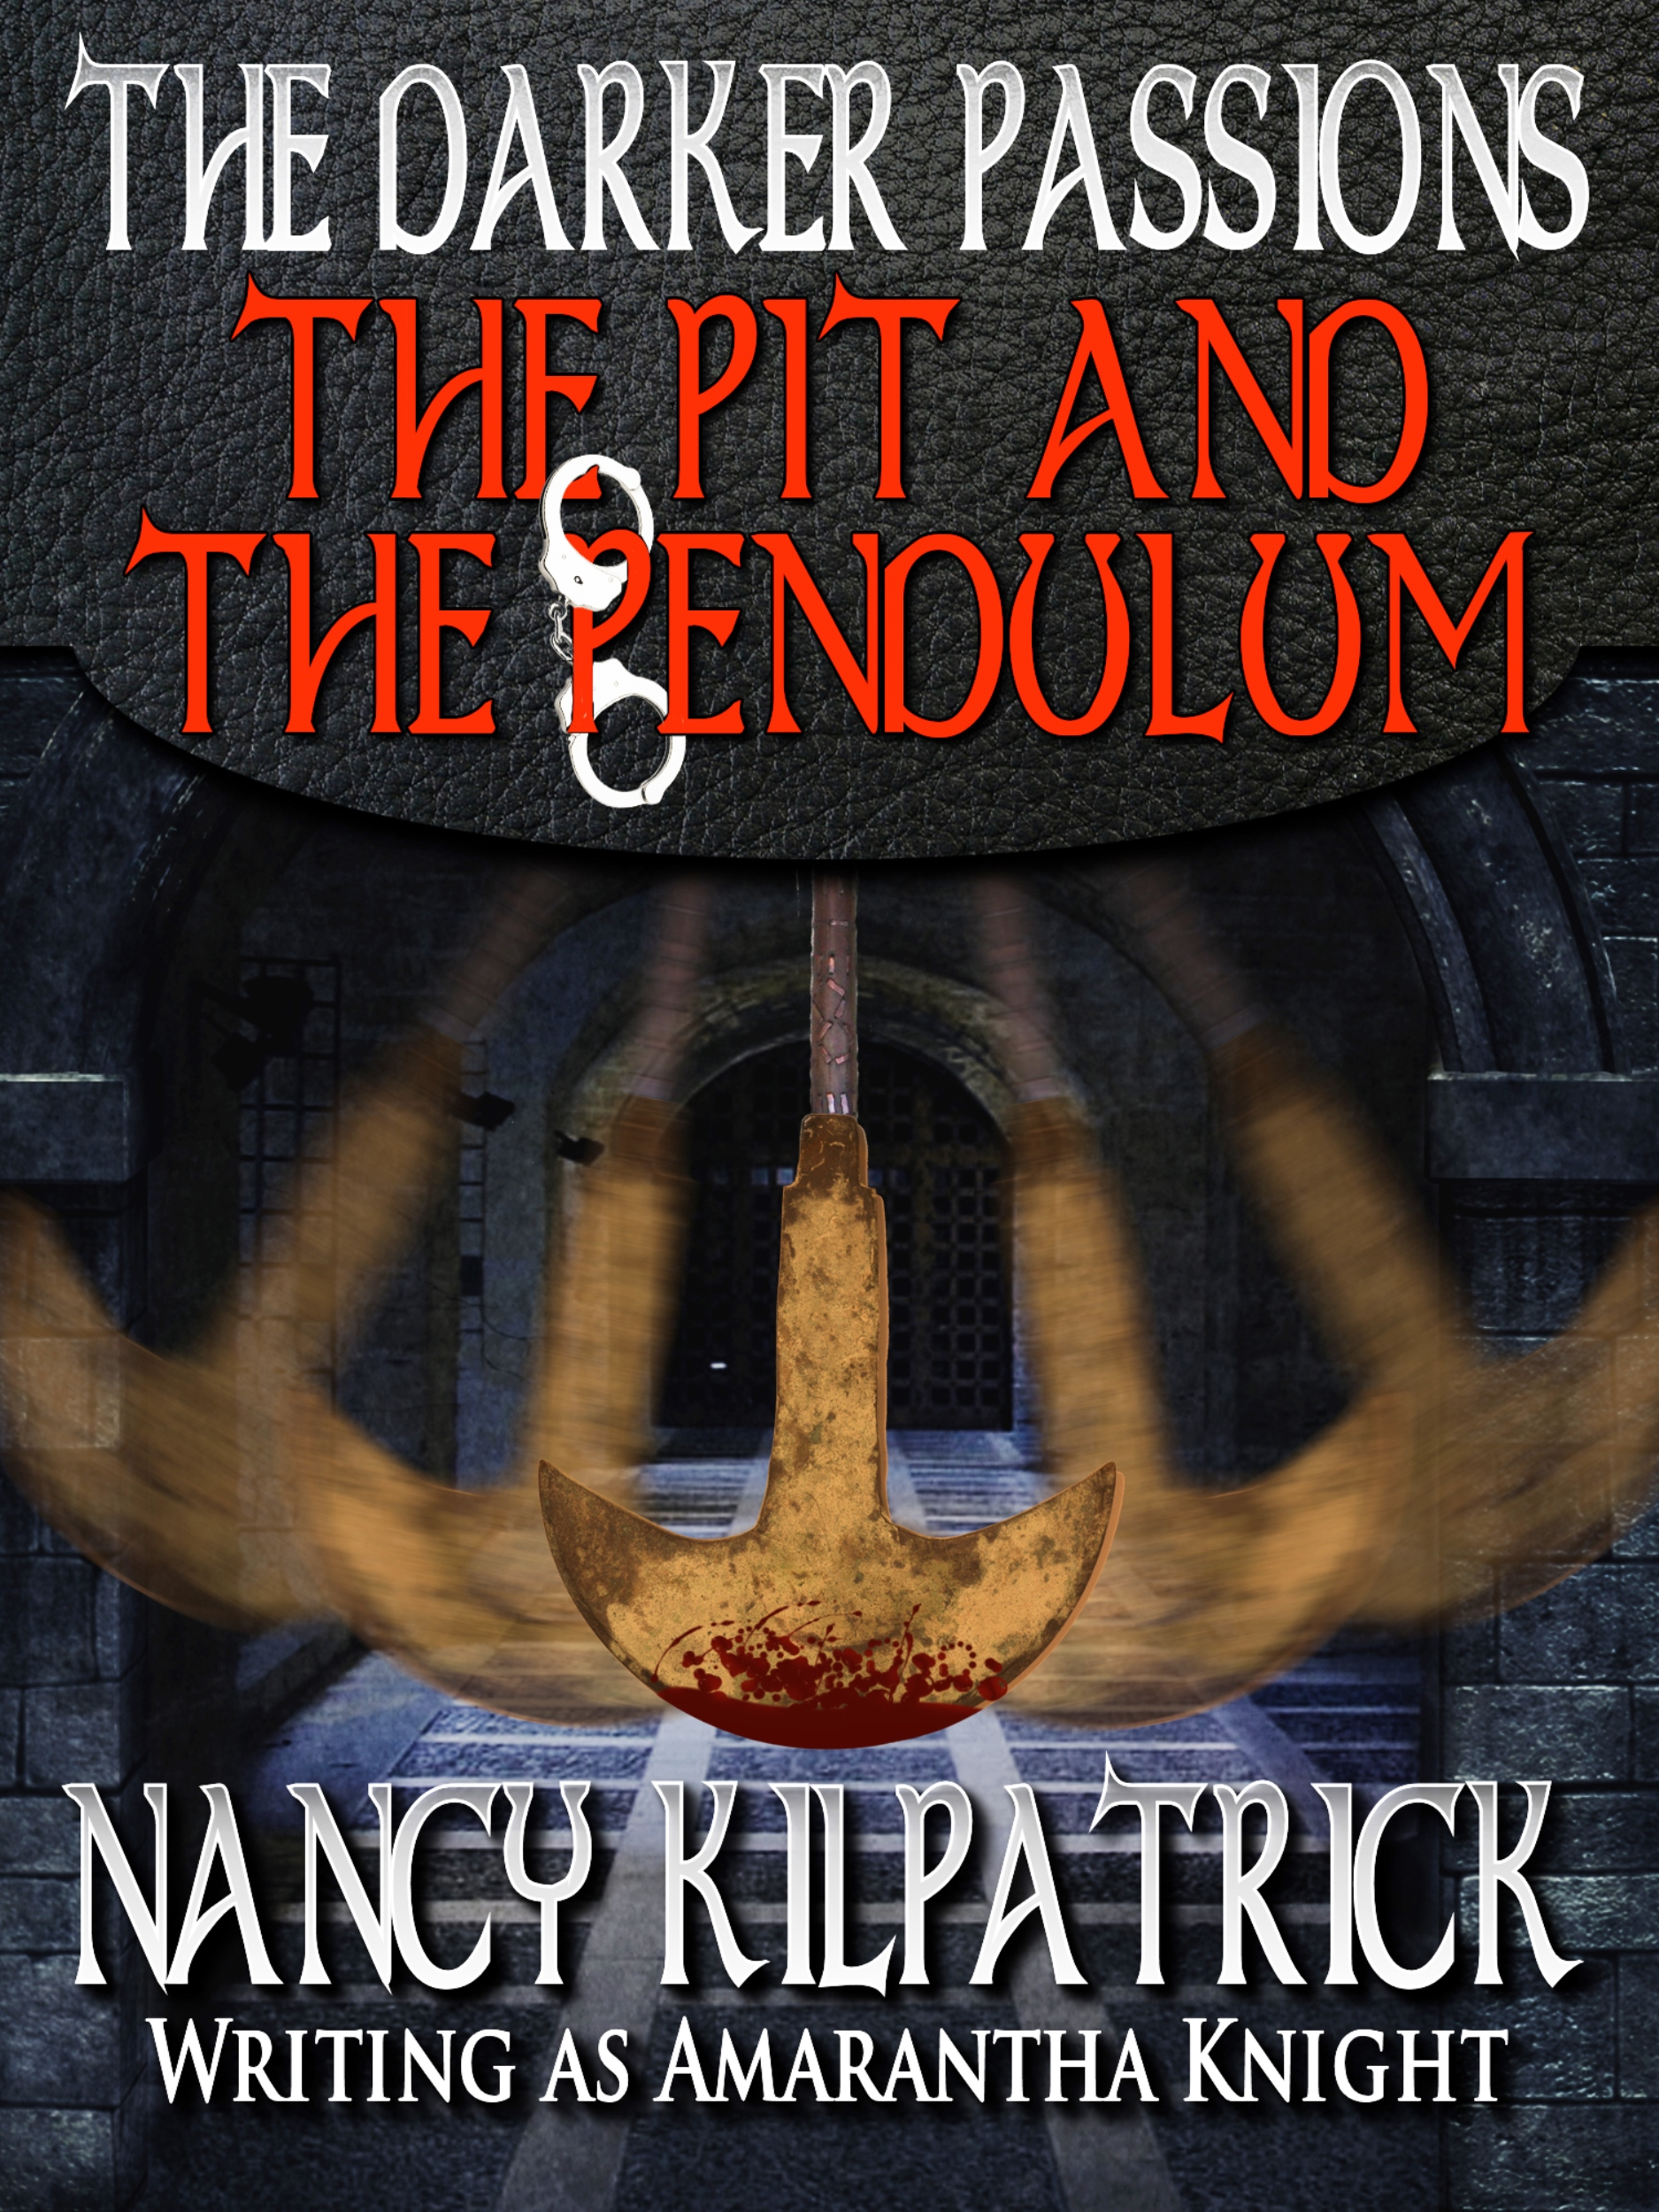 the pit and the pendulum movie vs book essay Guide to the pit and the pendulum the fall of the house of usher audio book documents for human relationships in whitman vs dickinson essay.